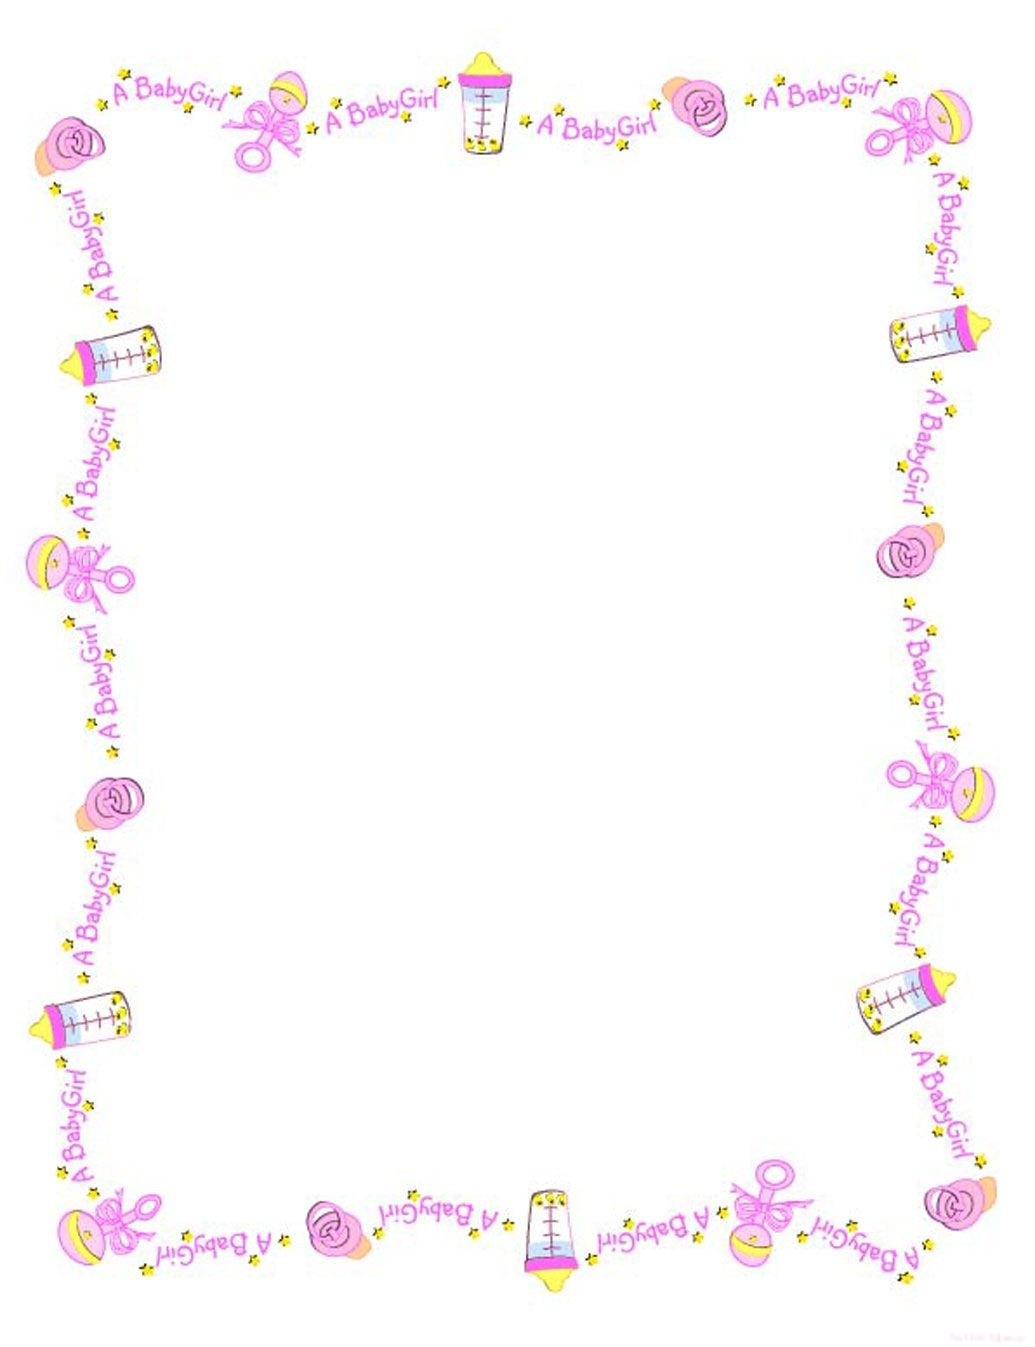 Baby Girl Borders Clipart - Clipart Kid   Projects   Baby Shawer - Free Printable Baby Borders For Paper